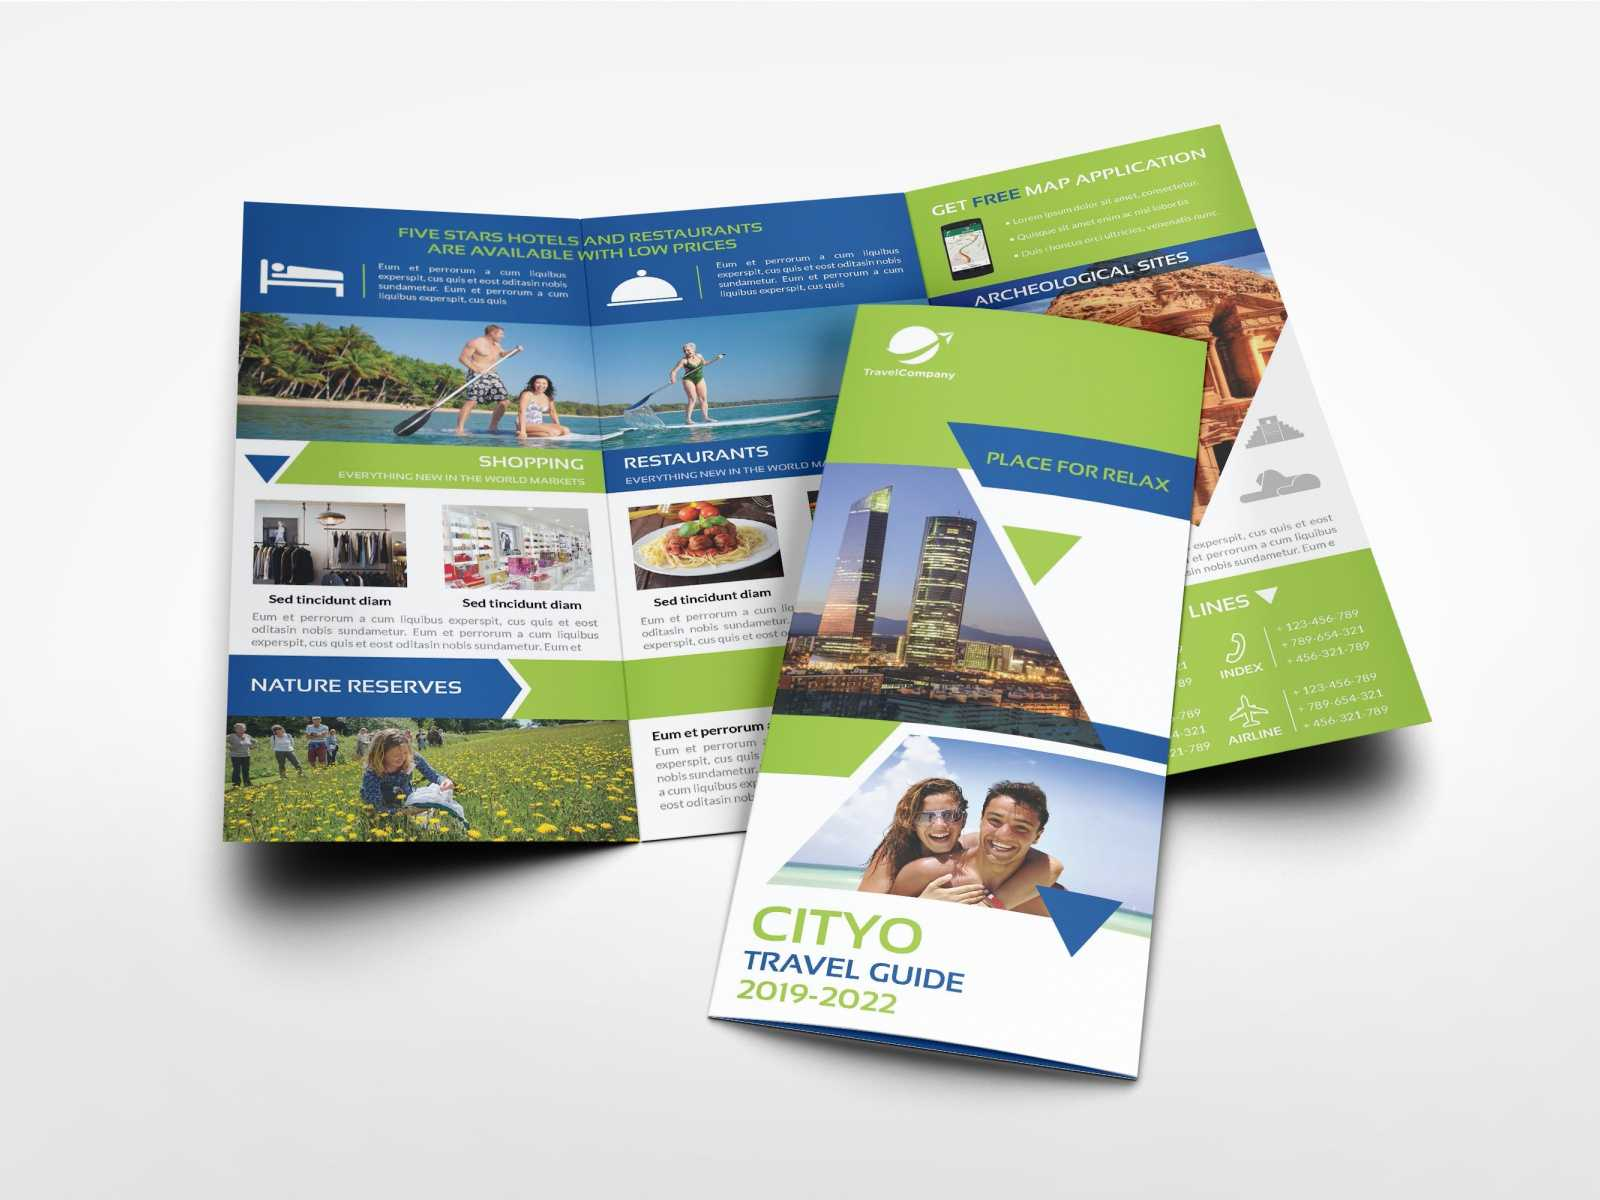 Travel Guide Tri Fold Brochure Templateowpictures On Throughout Travel Guide Brochure Template